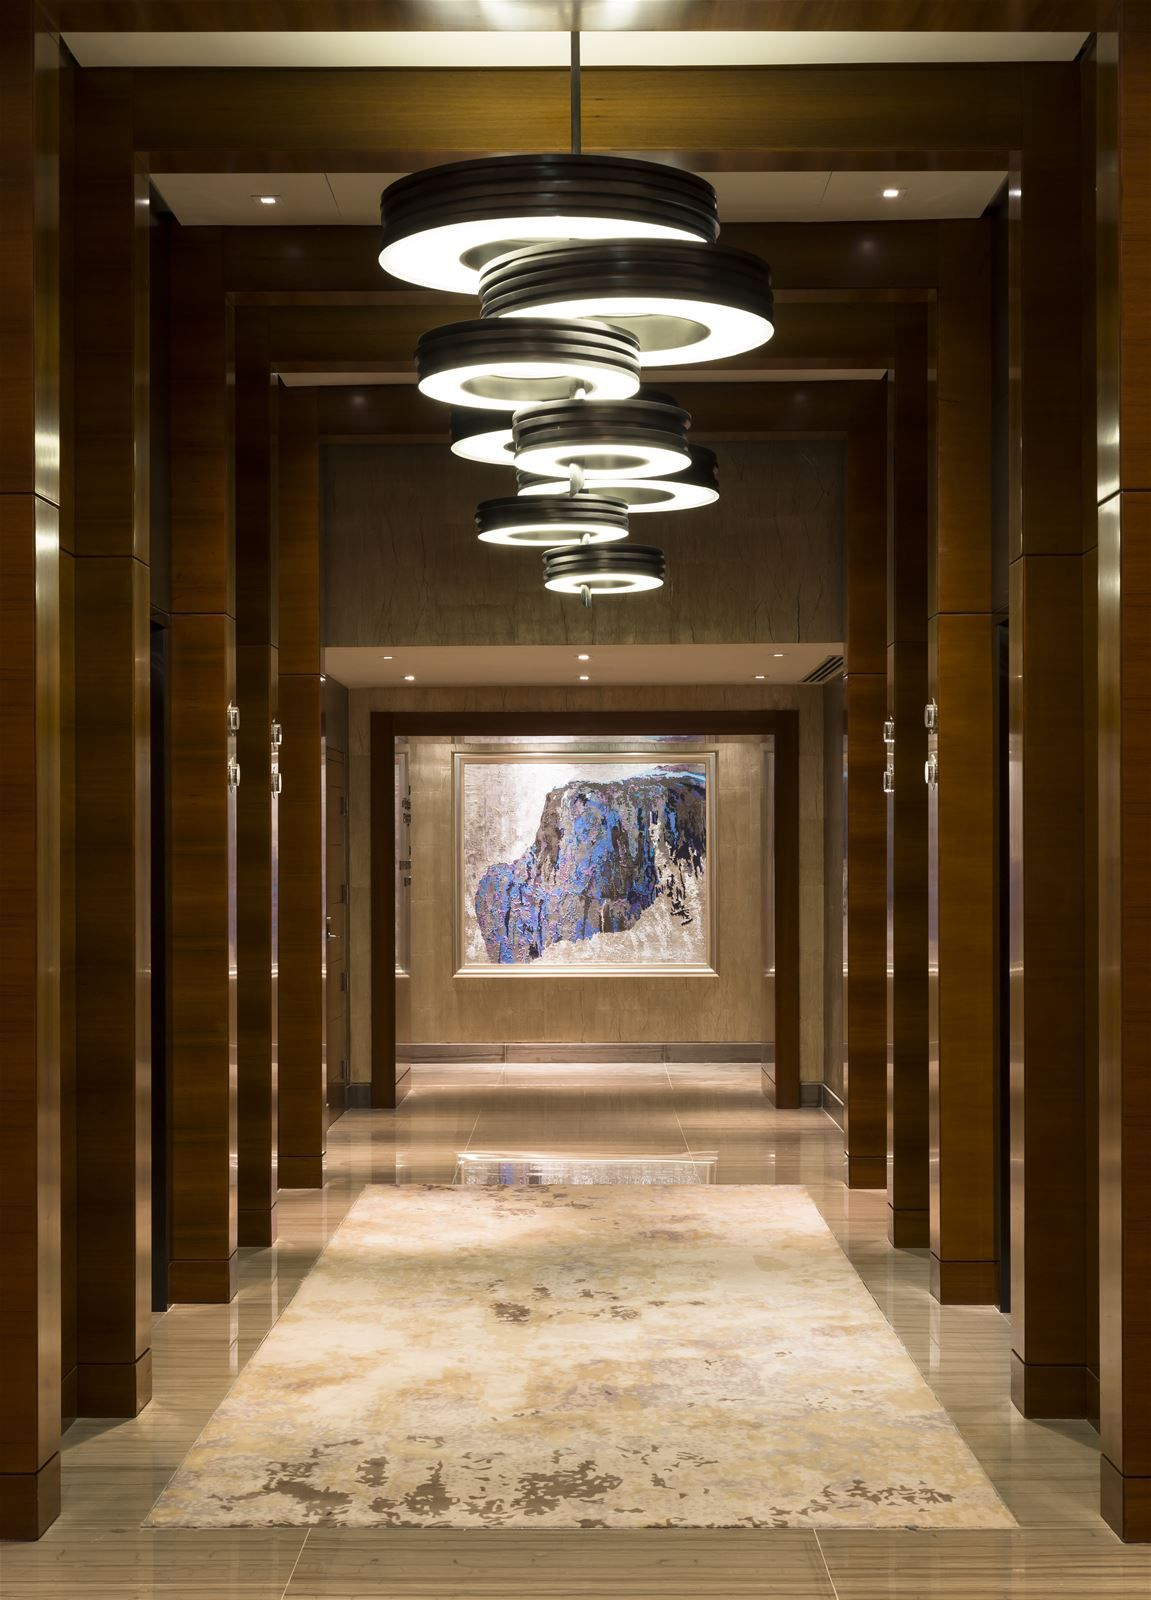 PRECIOSA Lighting Illuminated The Lobby With Circular